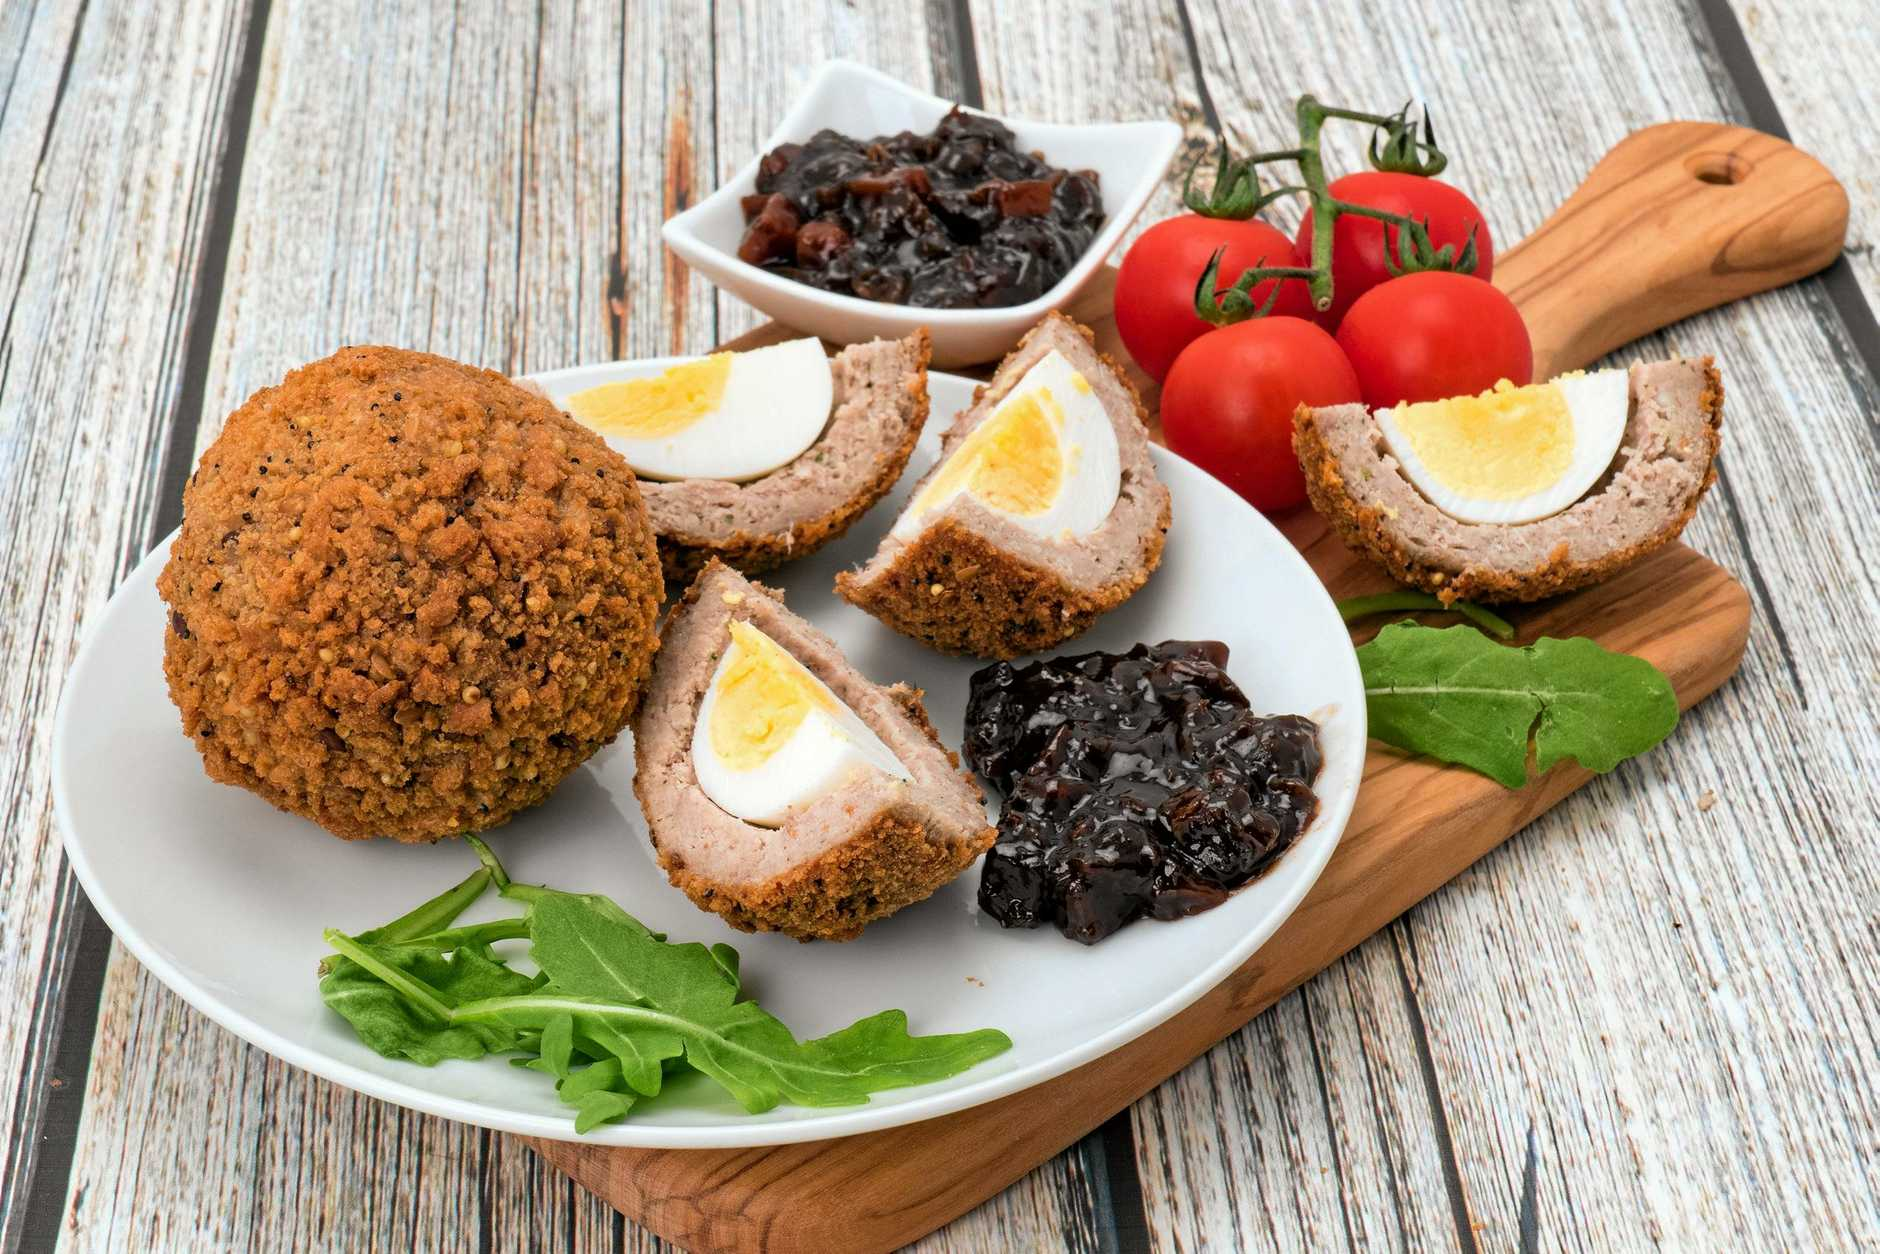 Pub grub: Scotch eggs.